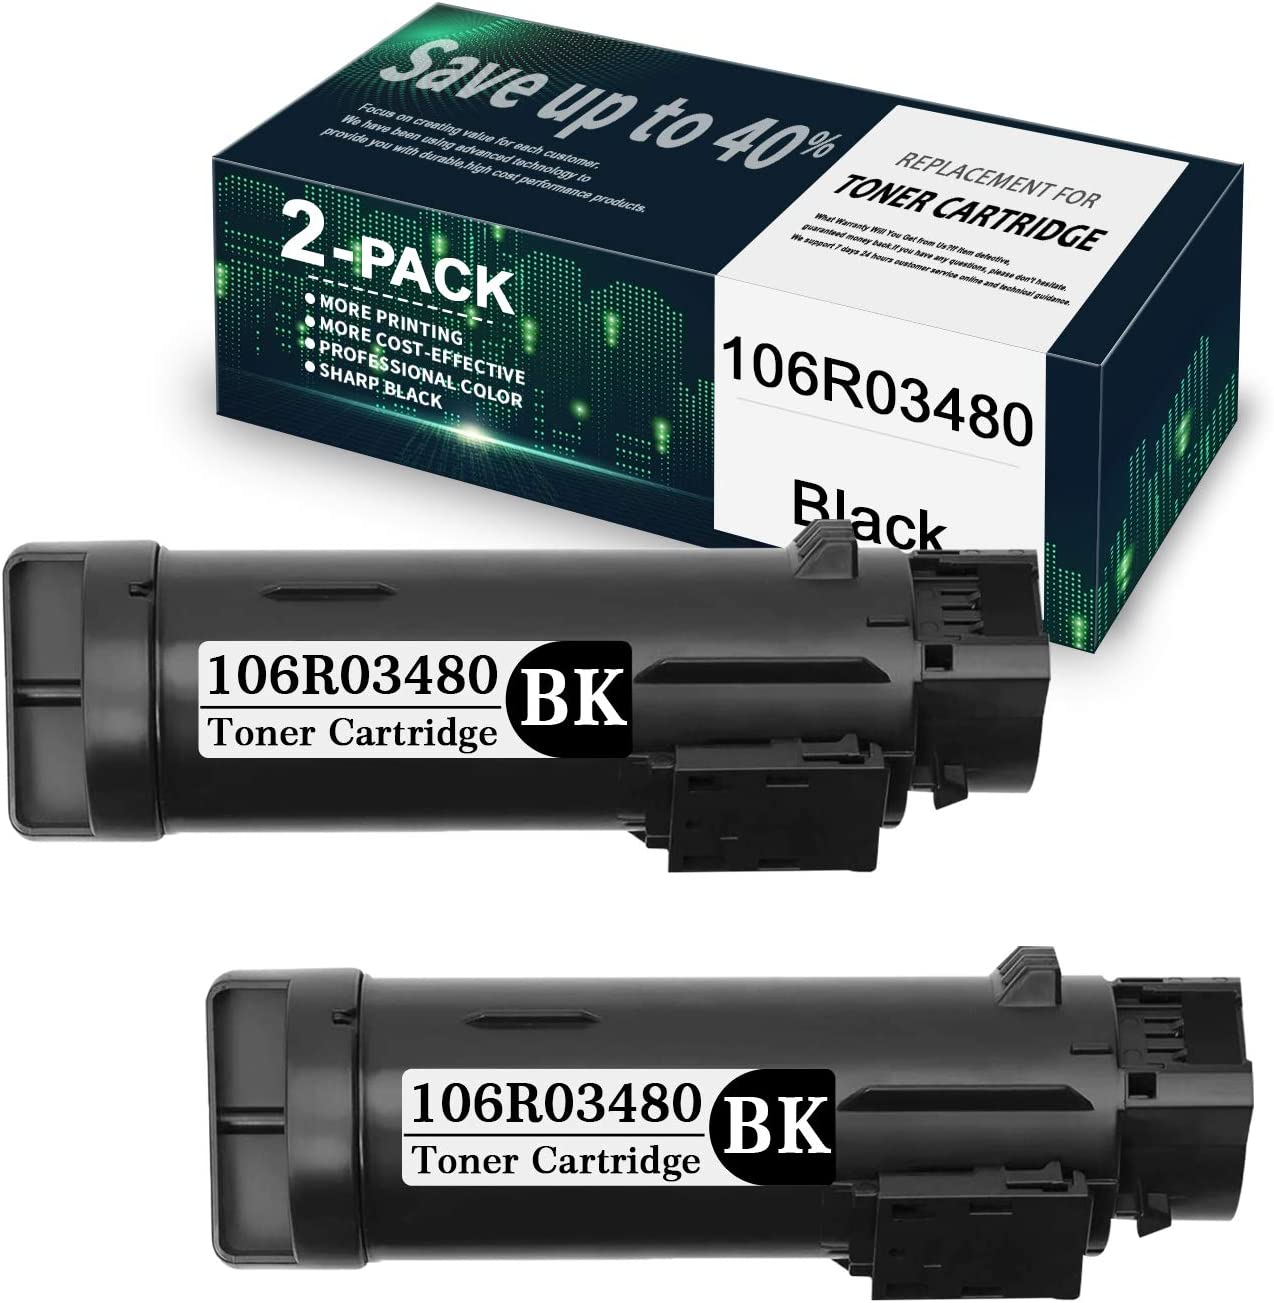 2-Pack Black unisex 106R03480 Compatible fo Toner Tampa Mall Cartridge Replacement